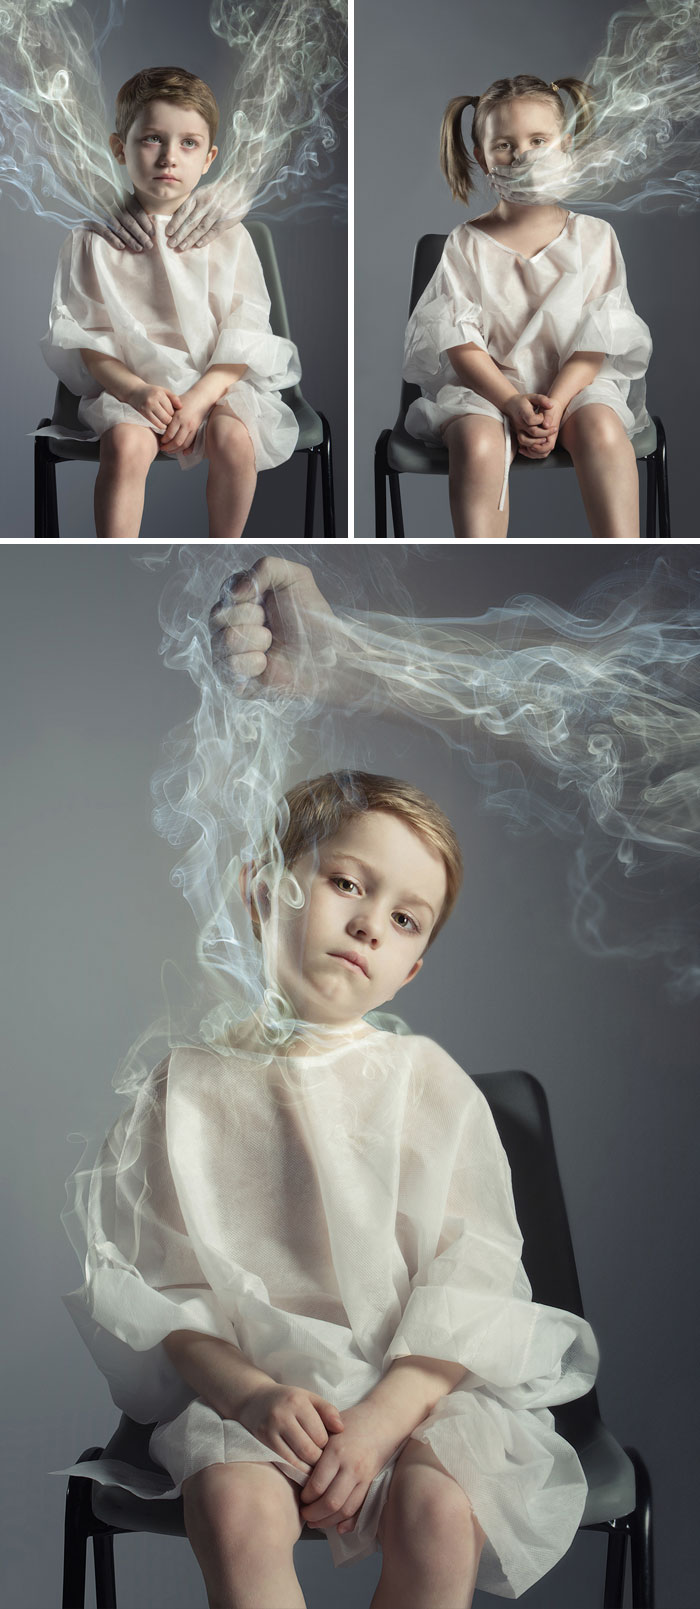 creative-anti-smoking-ads-39-5833f8feb5a27__700